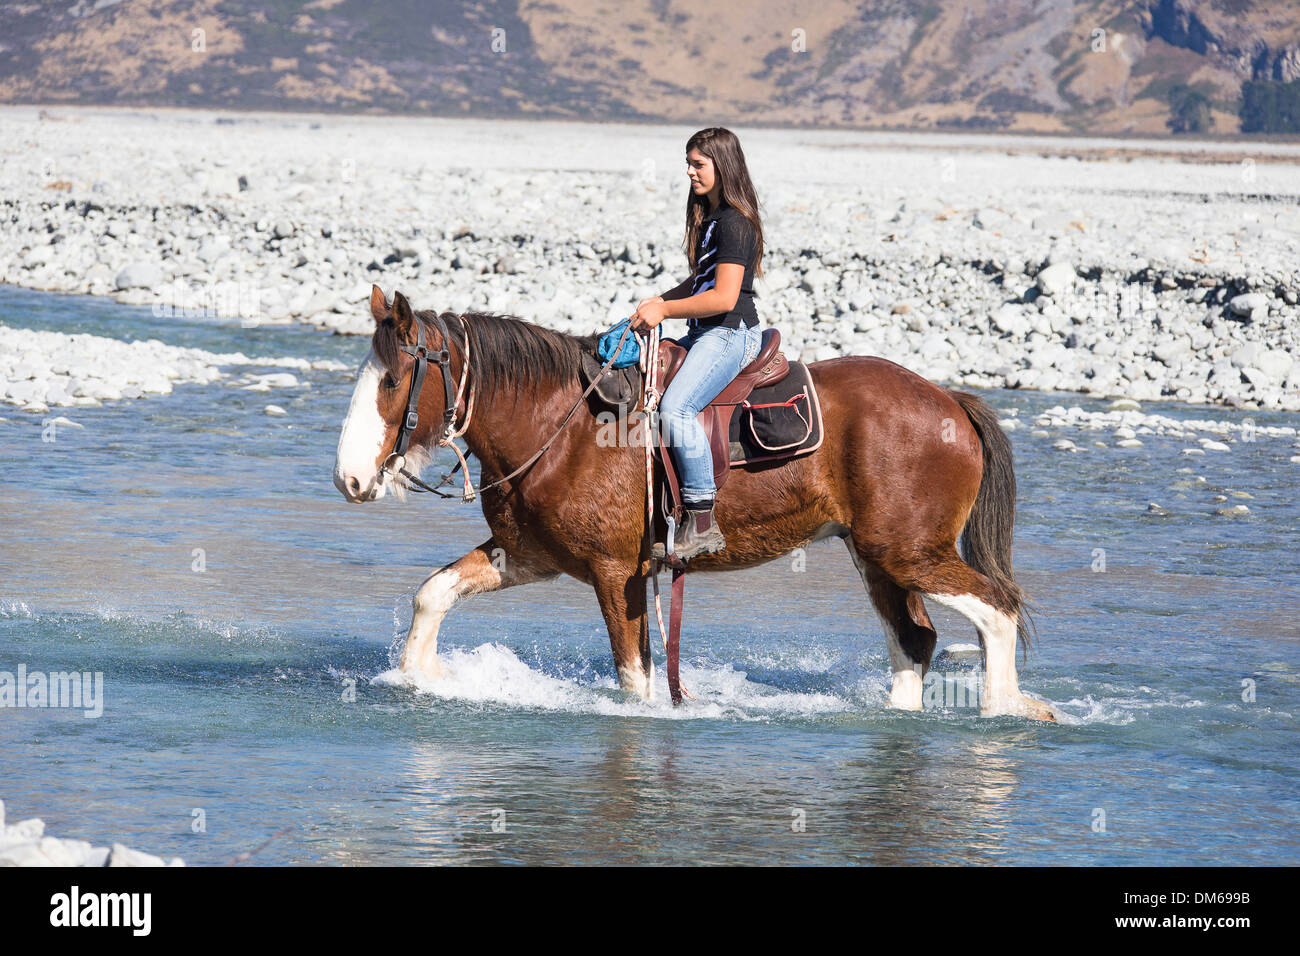 Horse Crossing River Stock Photos Amp Horse Crossing River